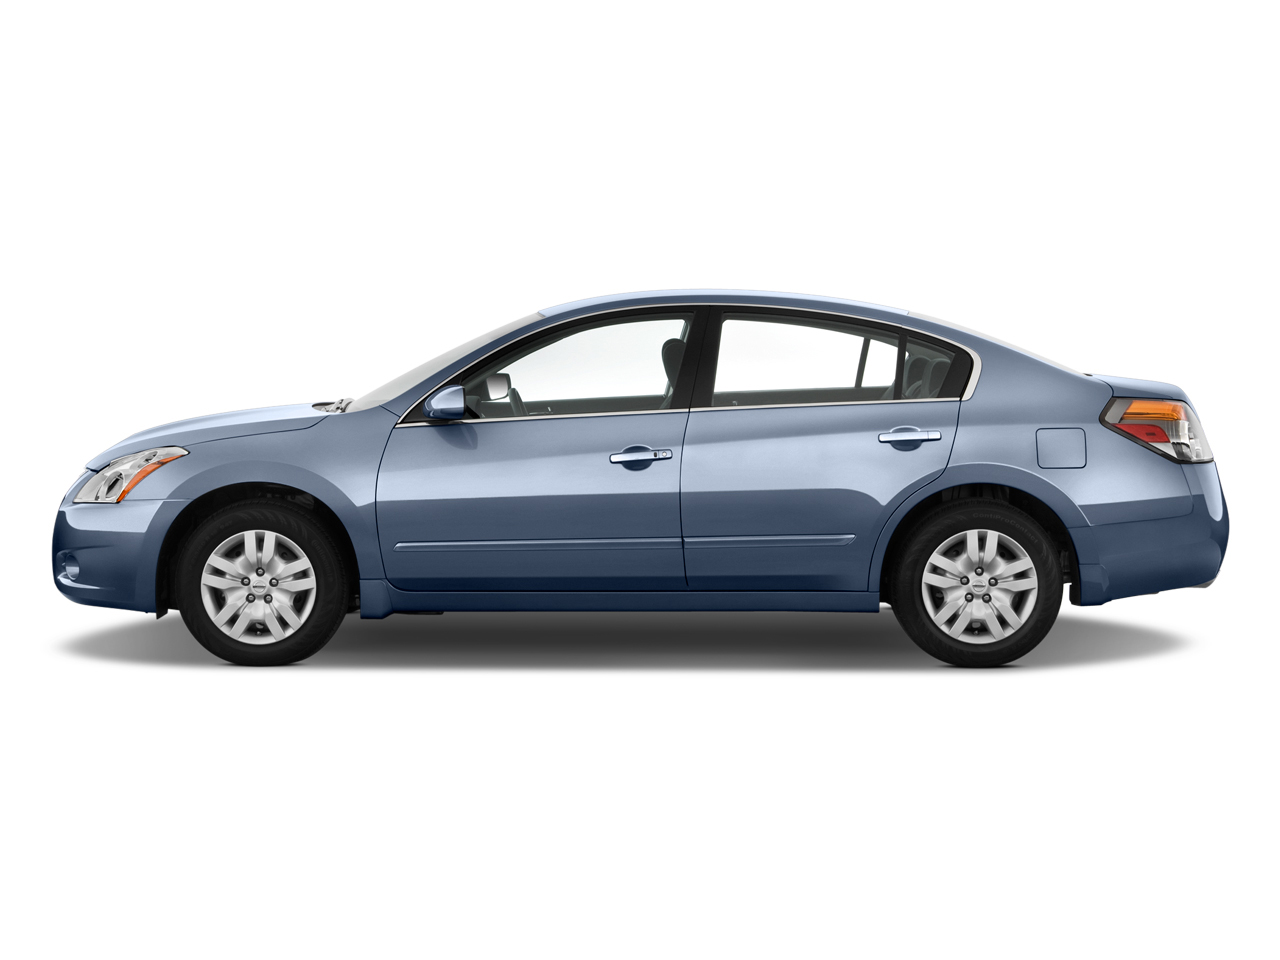 2012 nissan altima review ratings specs prices and. Black Bedroom Furniture Sets. Home Design Ideas